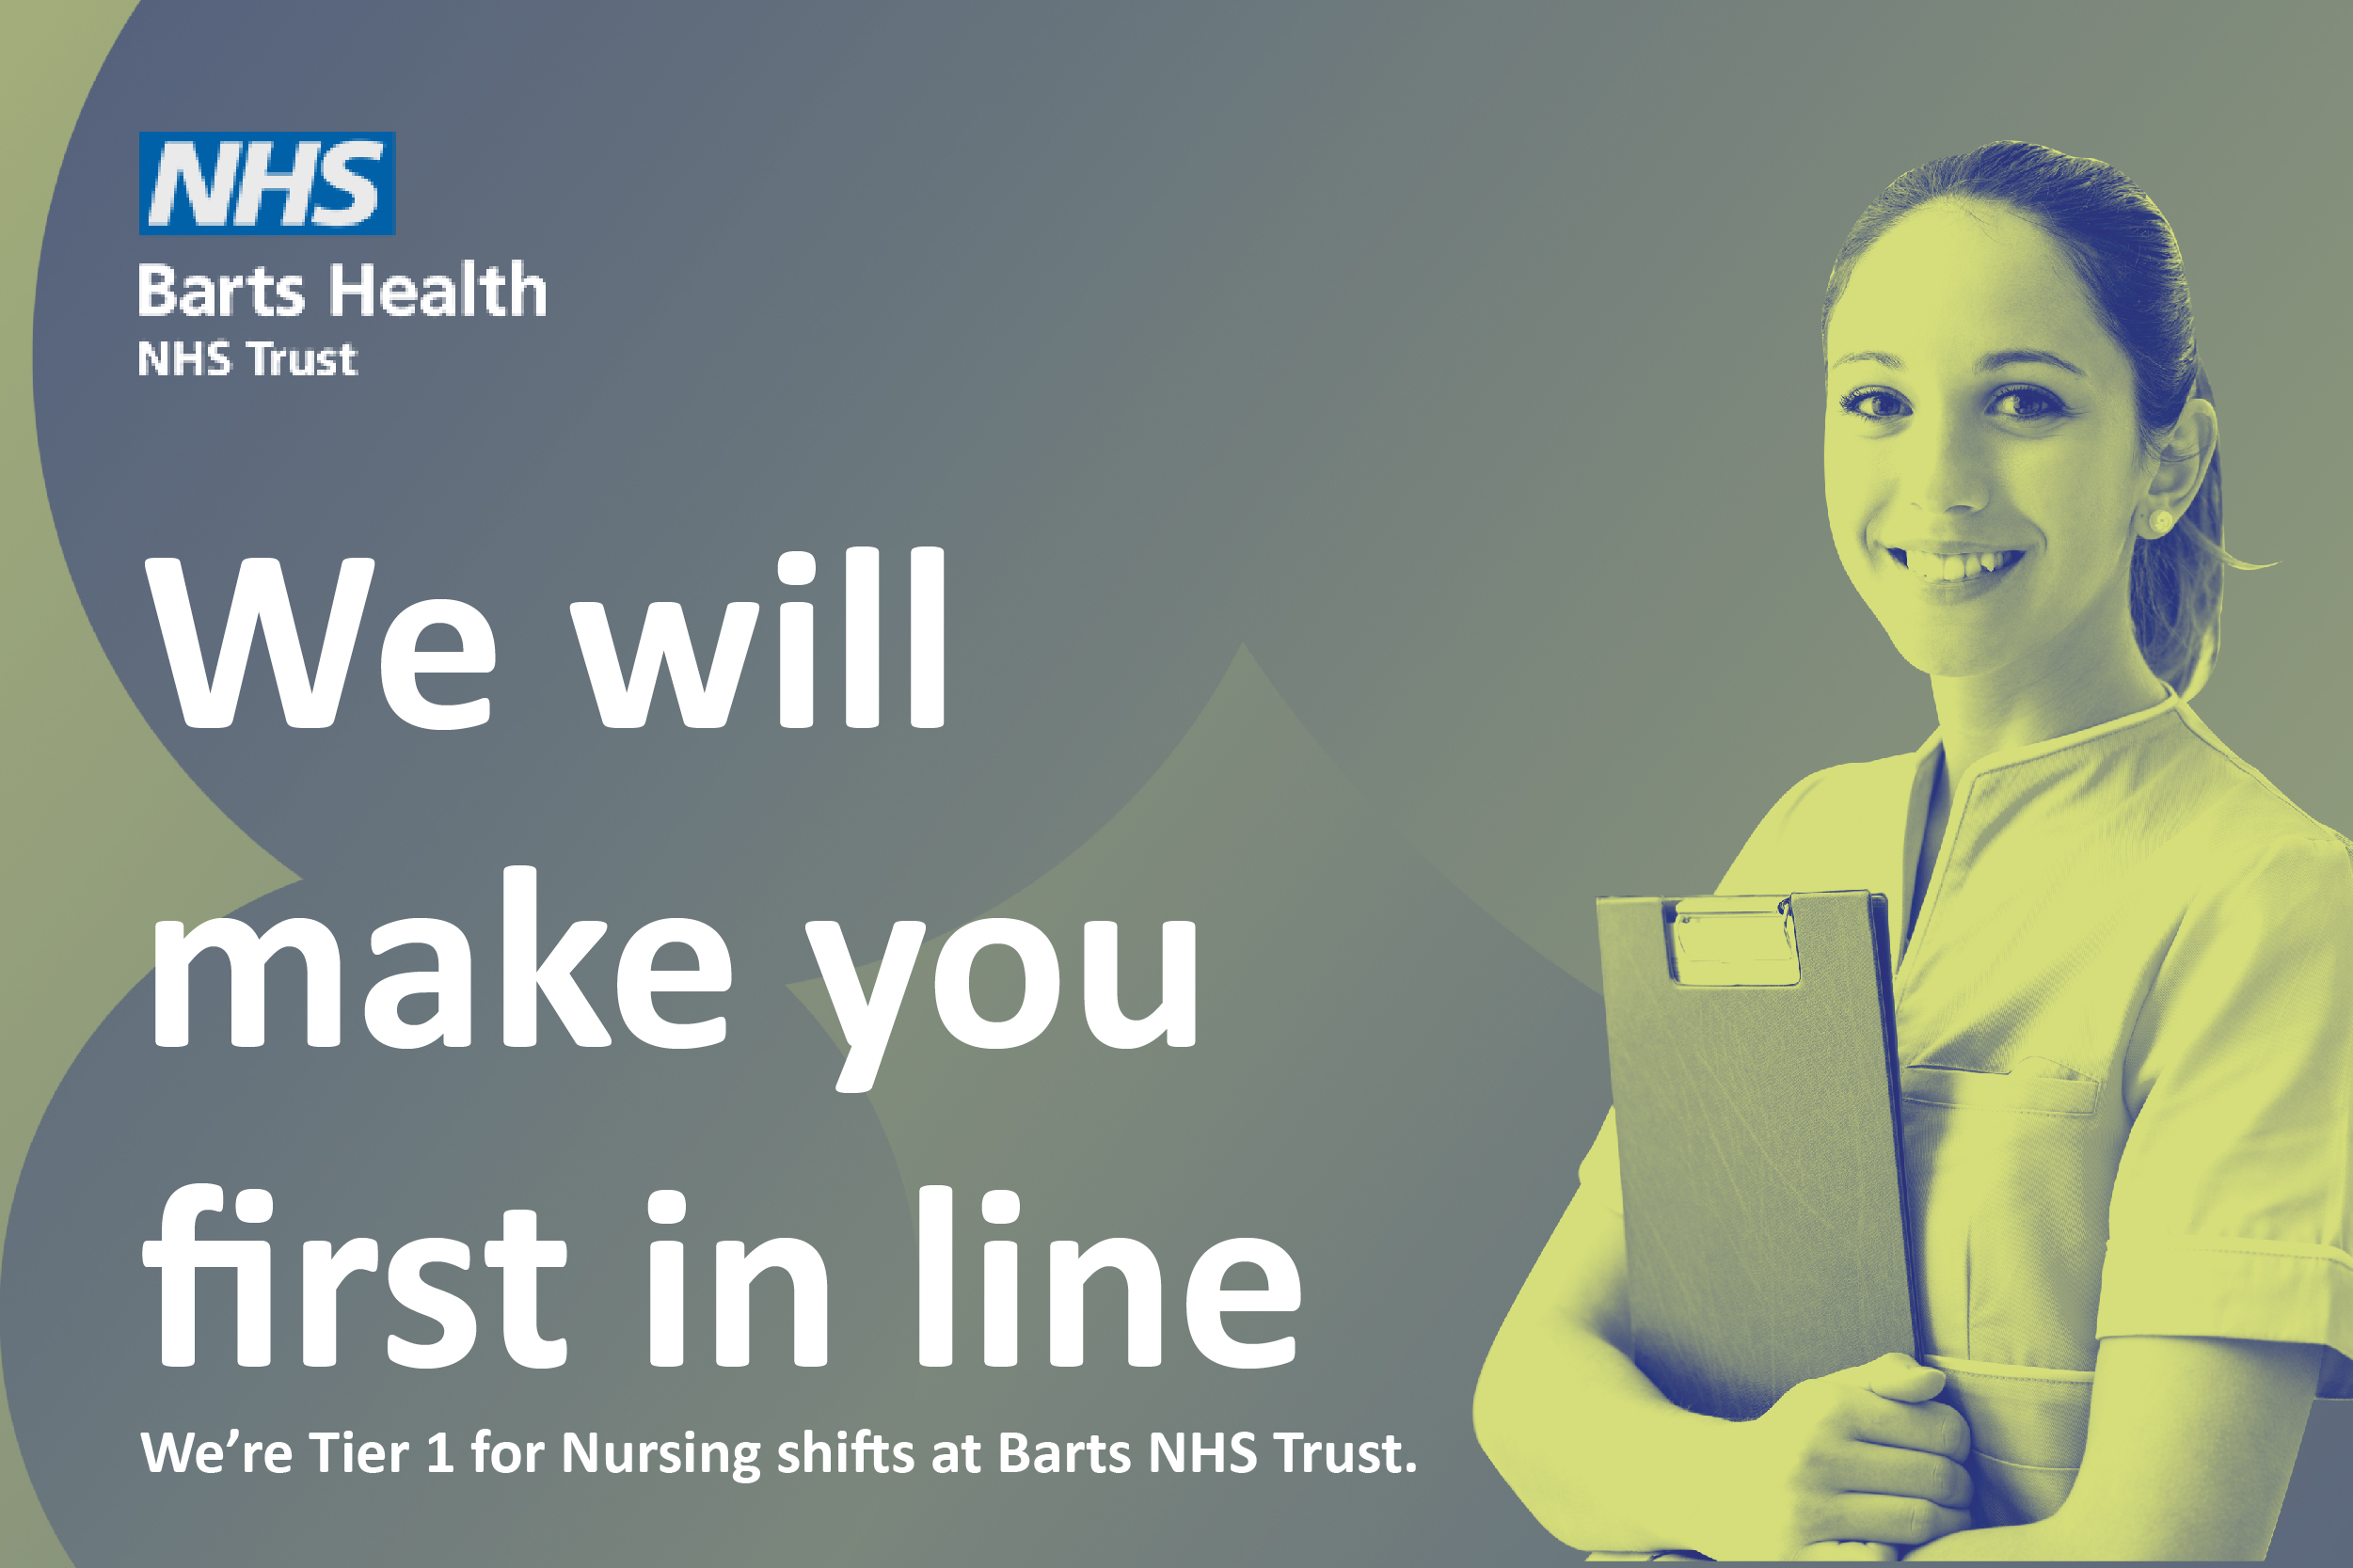 First in line for Nursing shifts at Barts NHS Trust